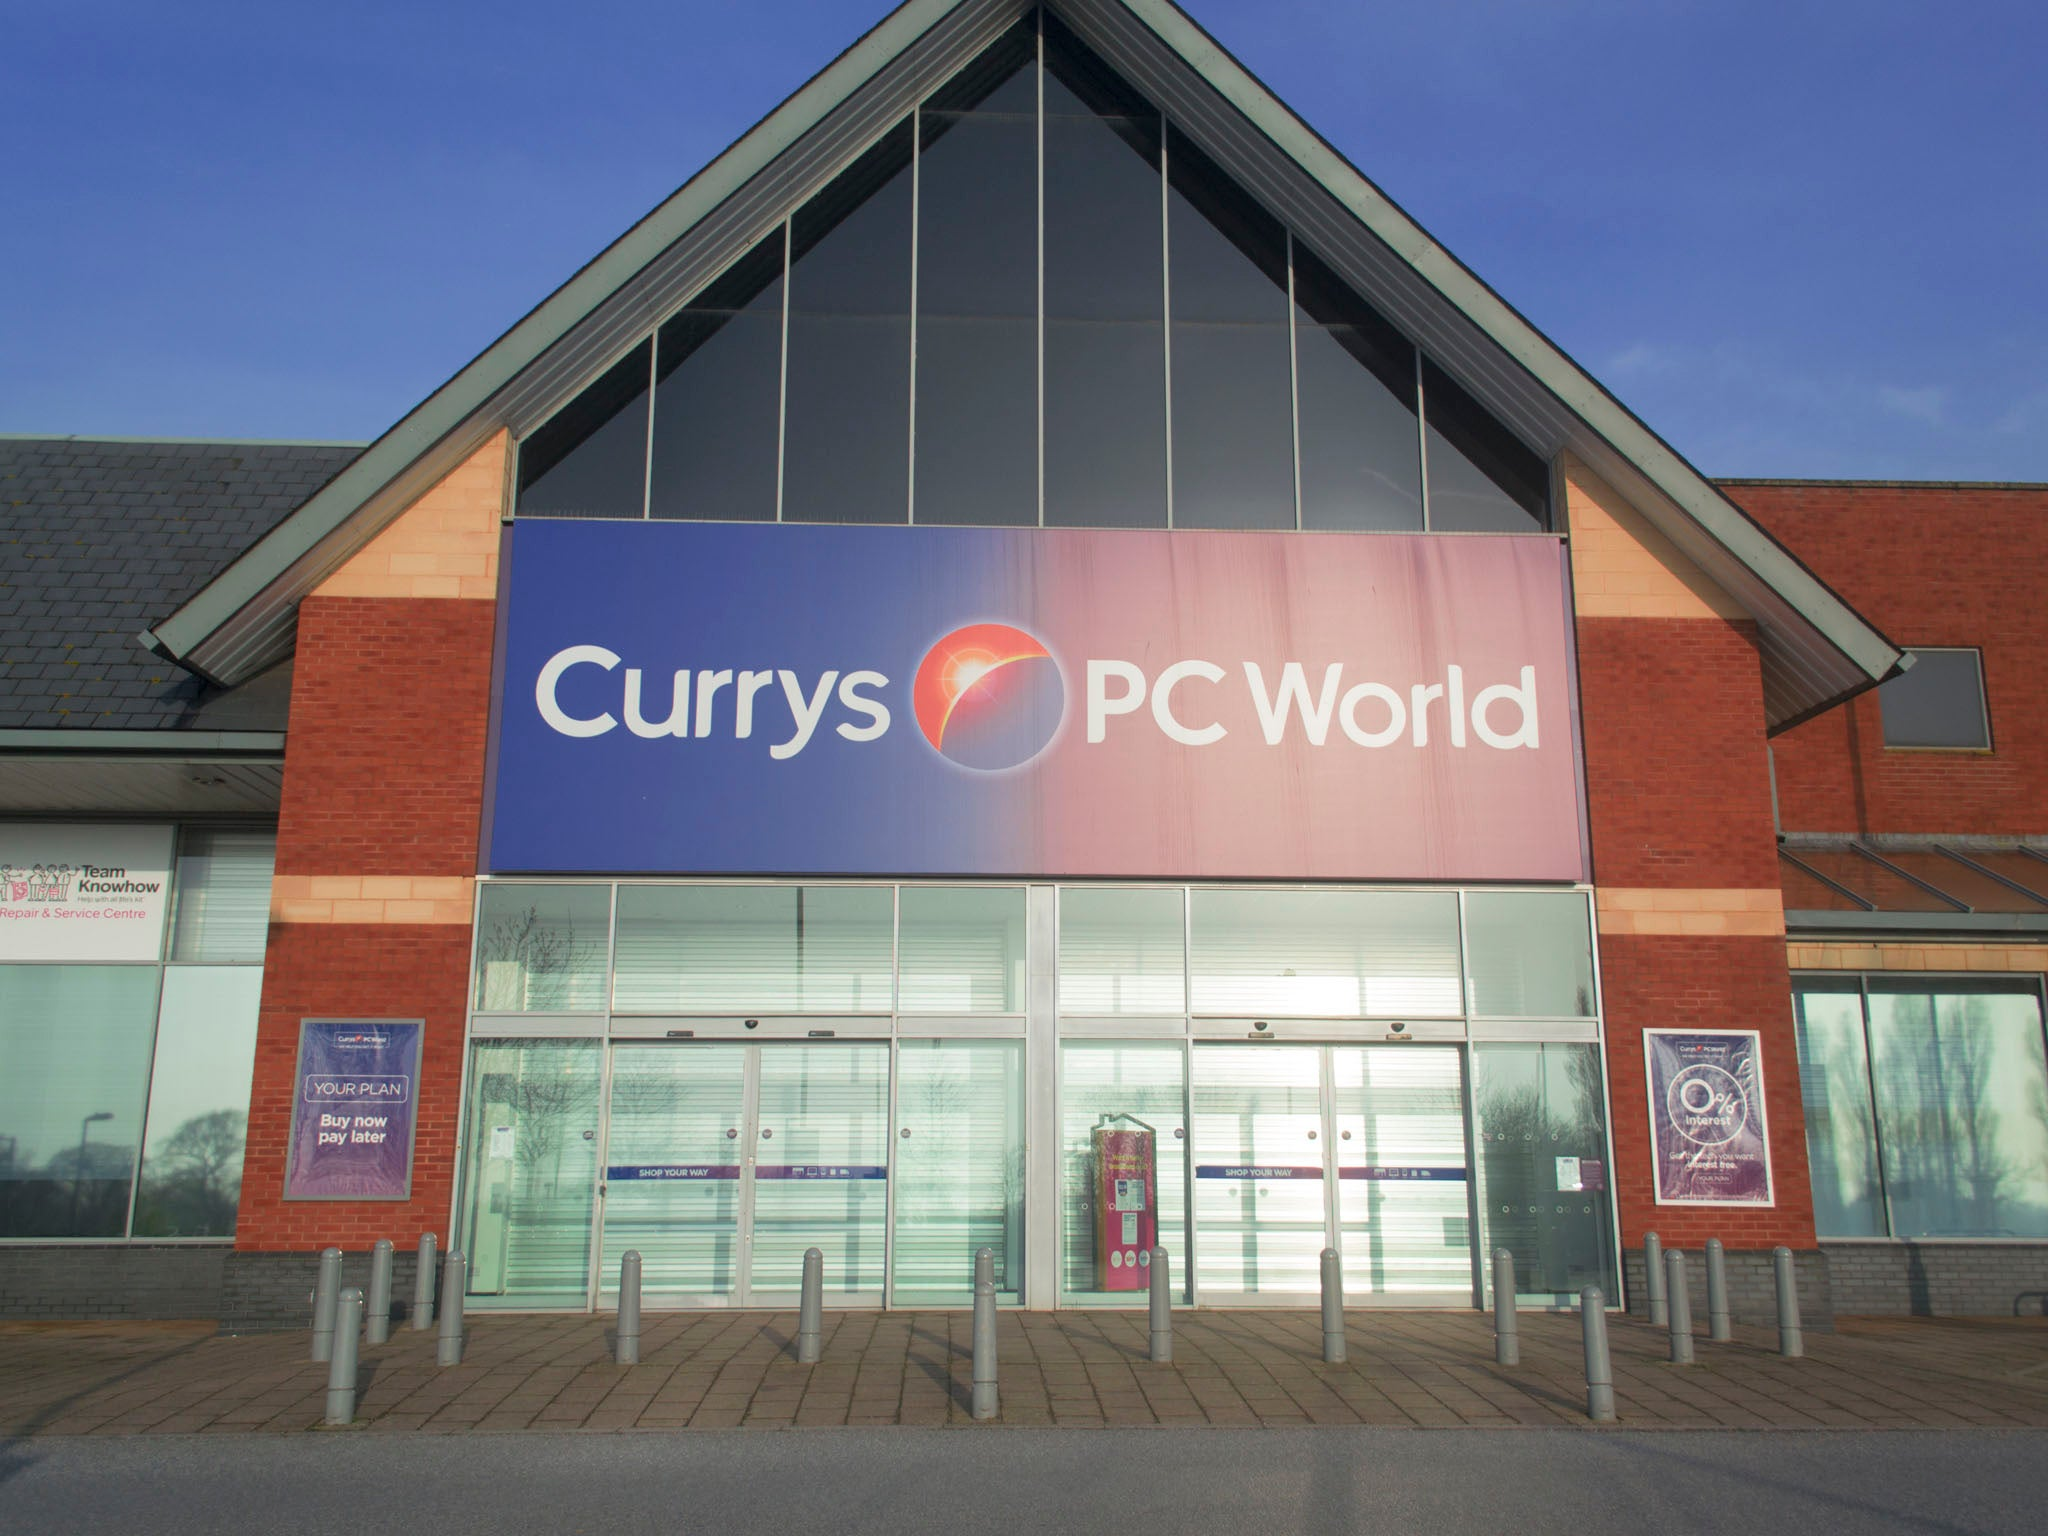 Price Glitch Sees Retailer Currys Drop Ipad Price To 4 Ahead Of Black Friday Sales The Independent The Independent